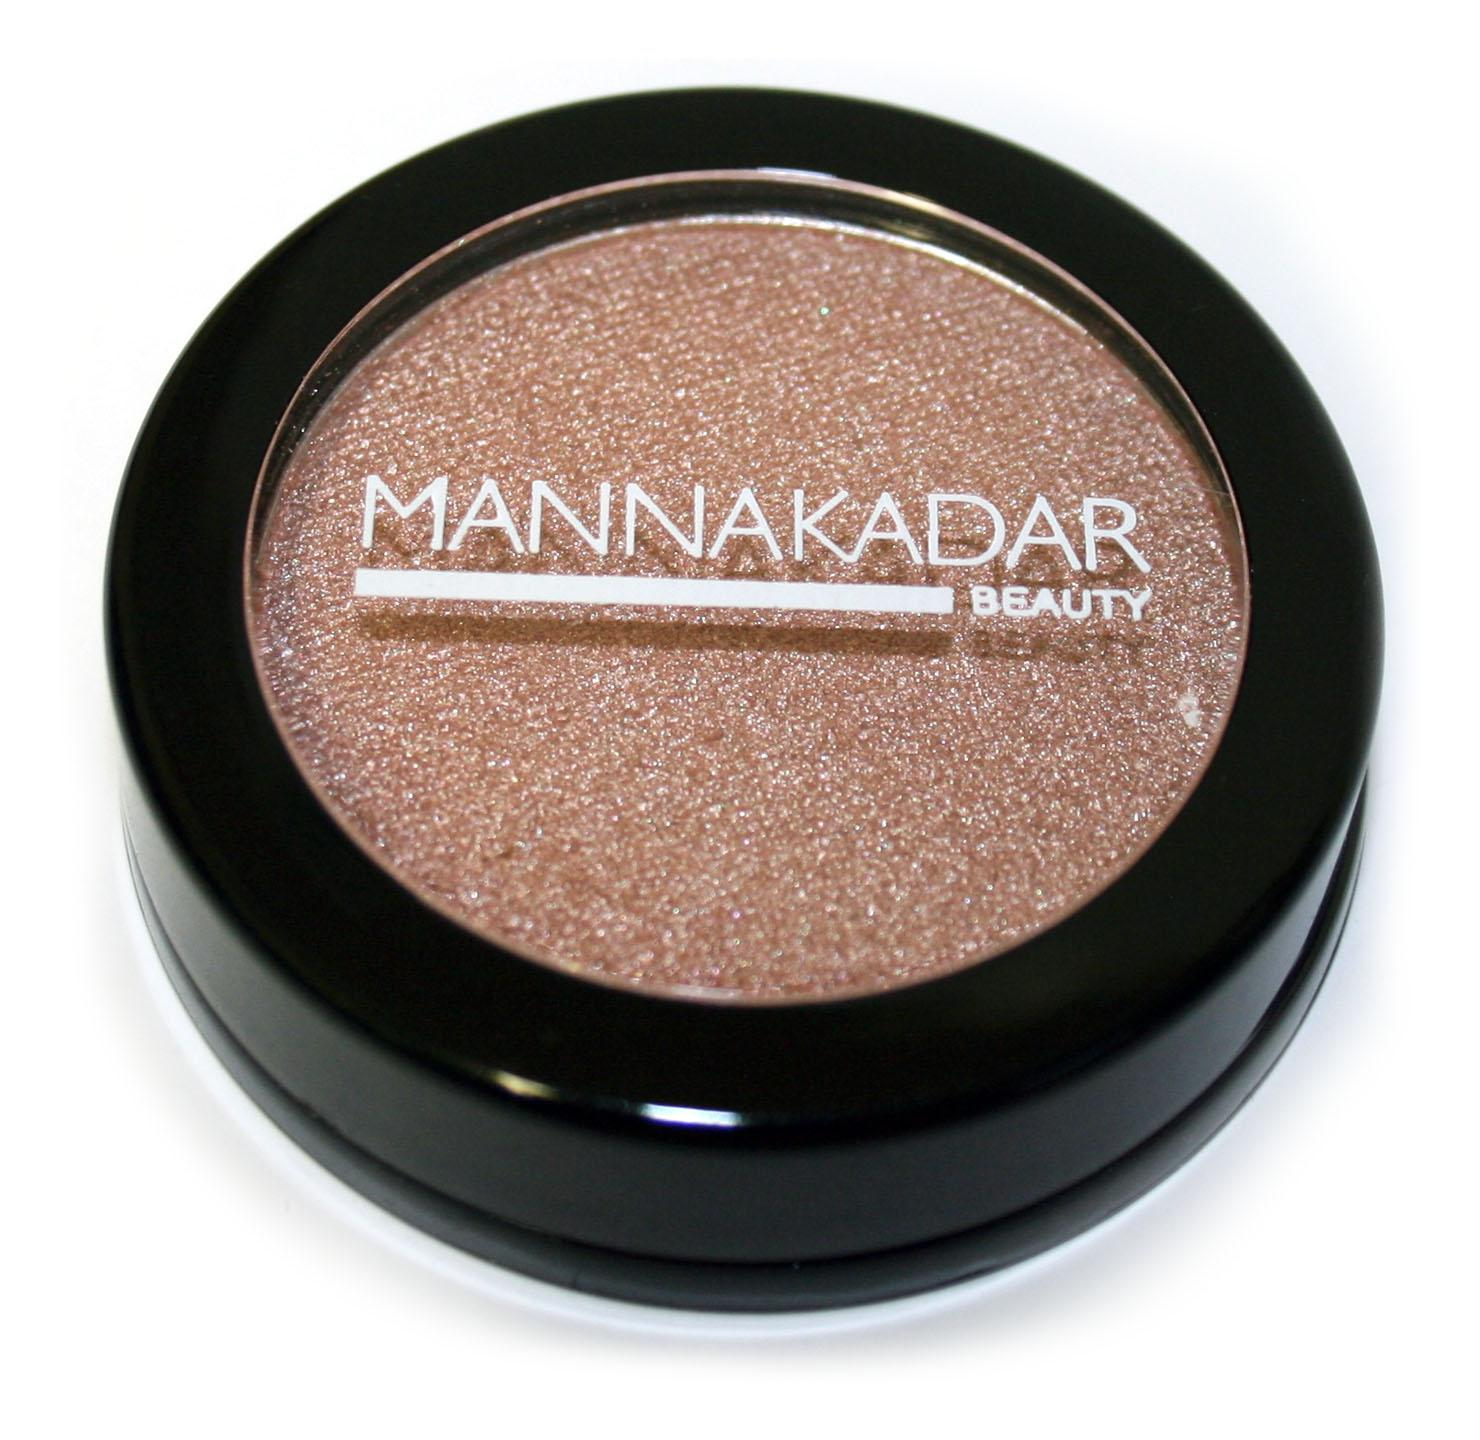 Manna Kadar Cosmetics Fantasy 3-in-1 Eyeshadow